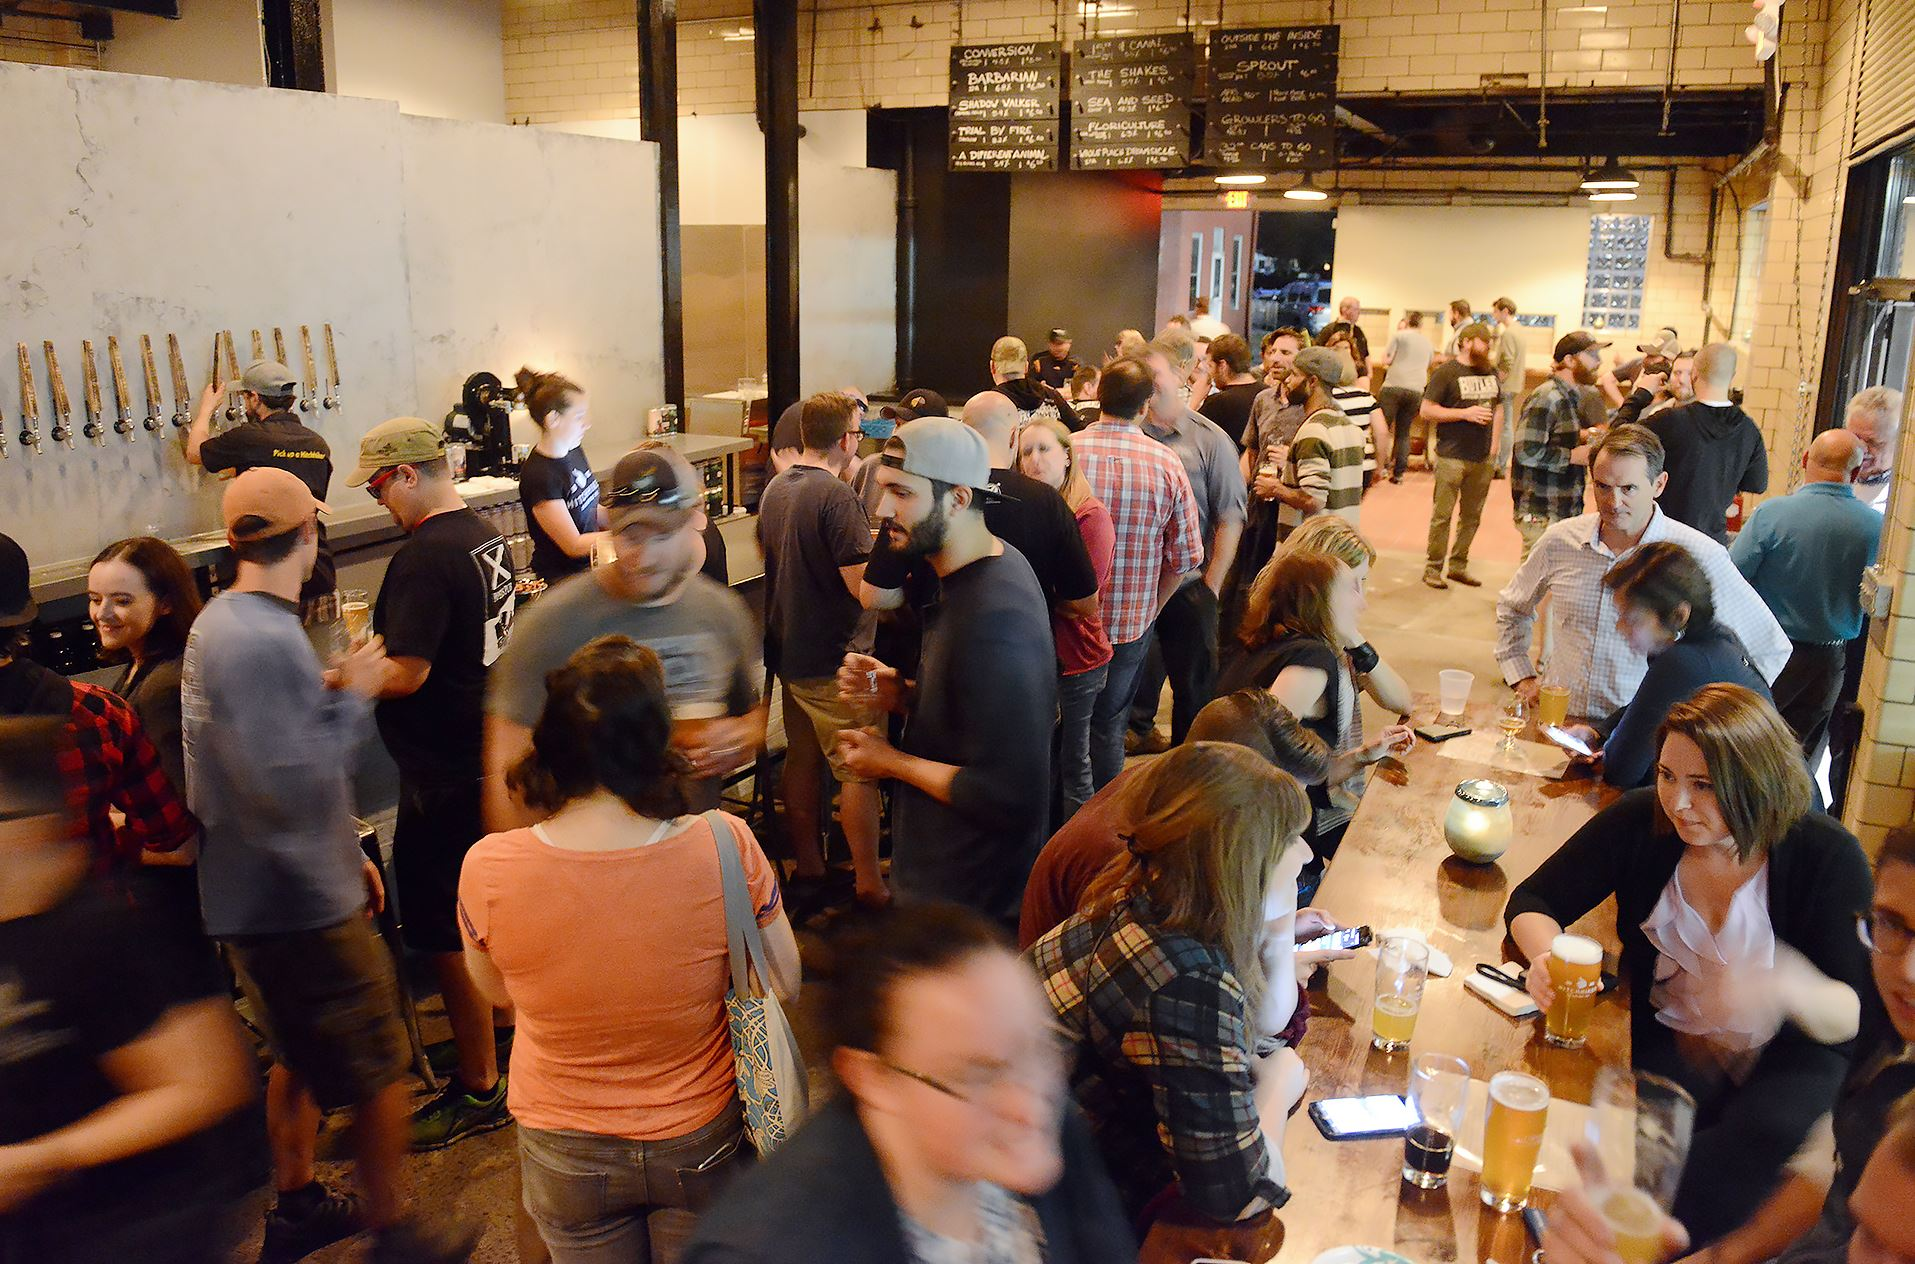 20170906rldHitchhiker04-2 Hitchhiker Brewing Company celebrates the opening of its' second location with a soft launch Wednesday in Sharpsburg.